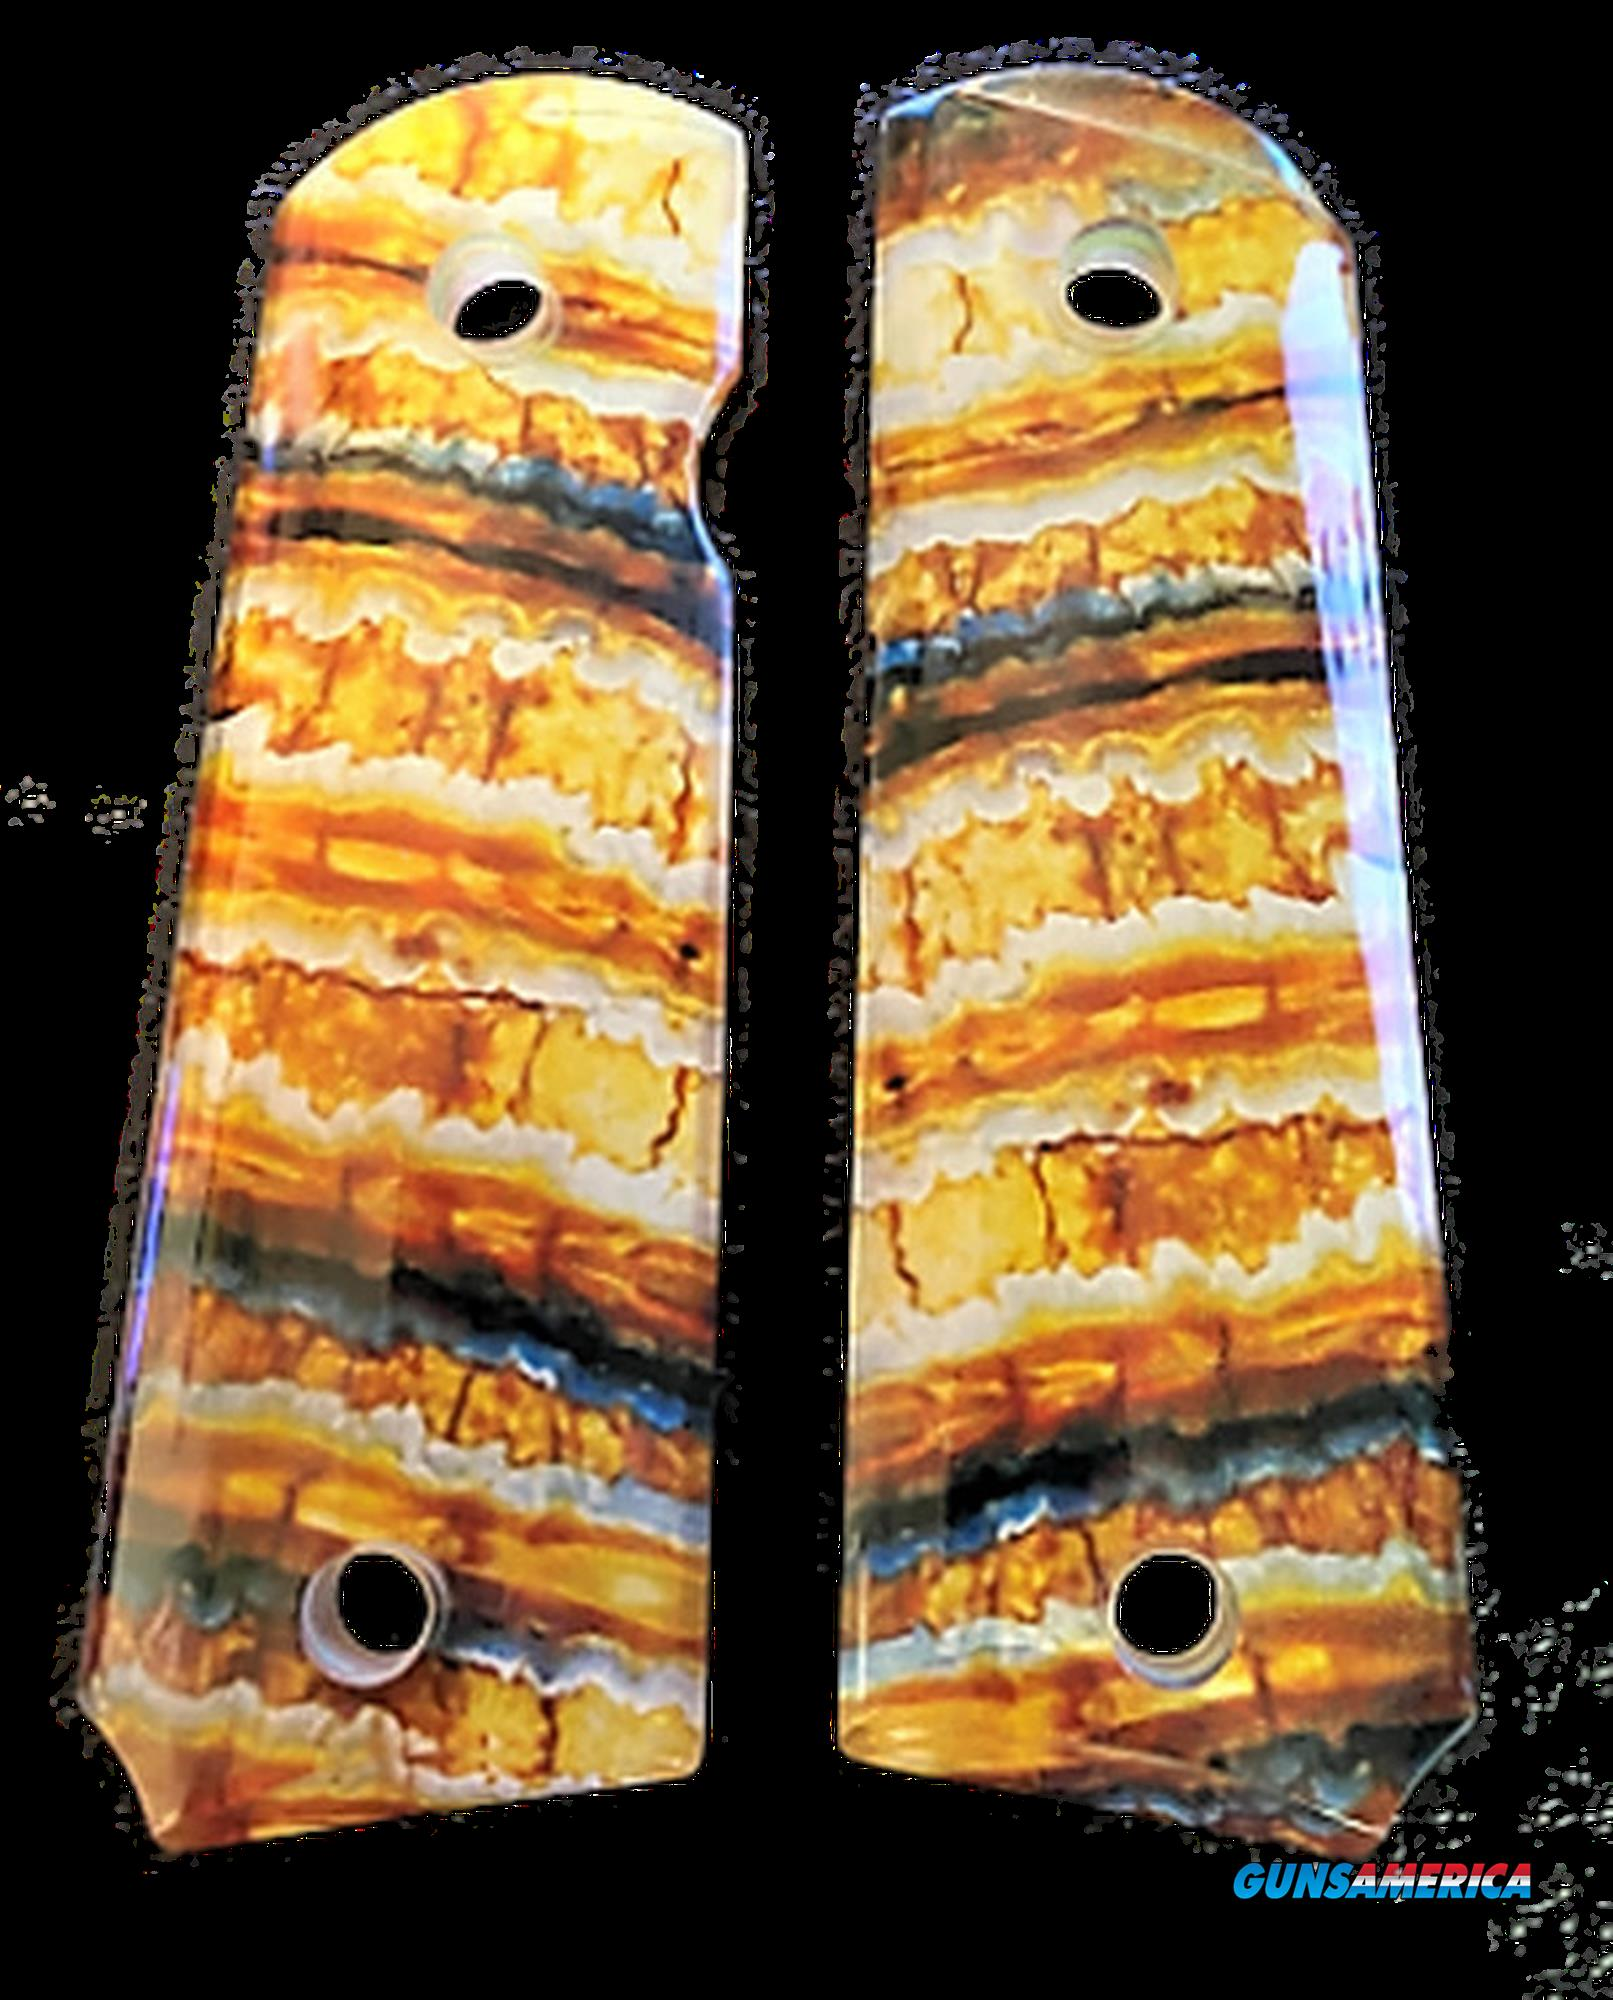 Premium 1911 Gun Grips Clear Acrylic Resin over Mammoth Tooth Image